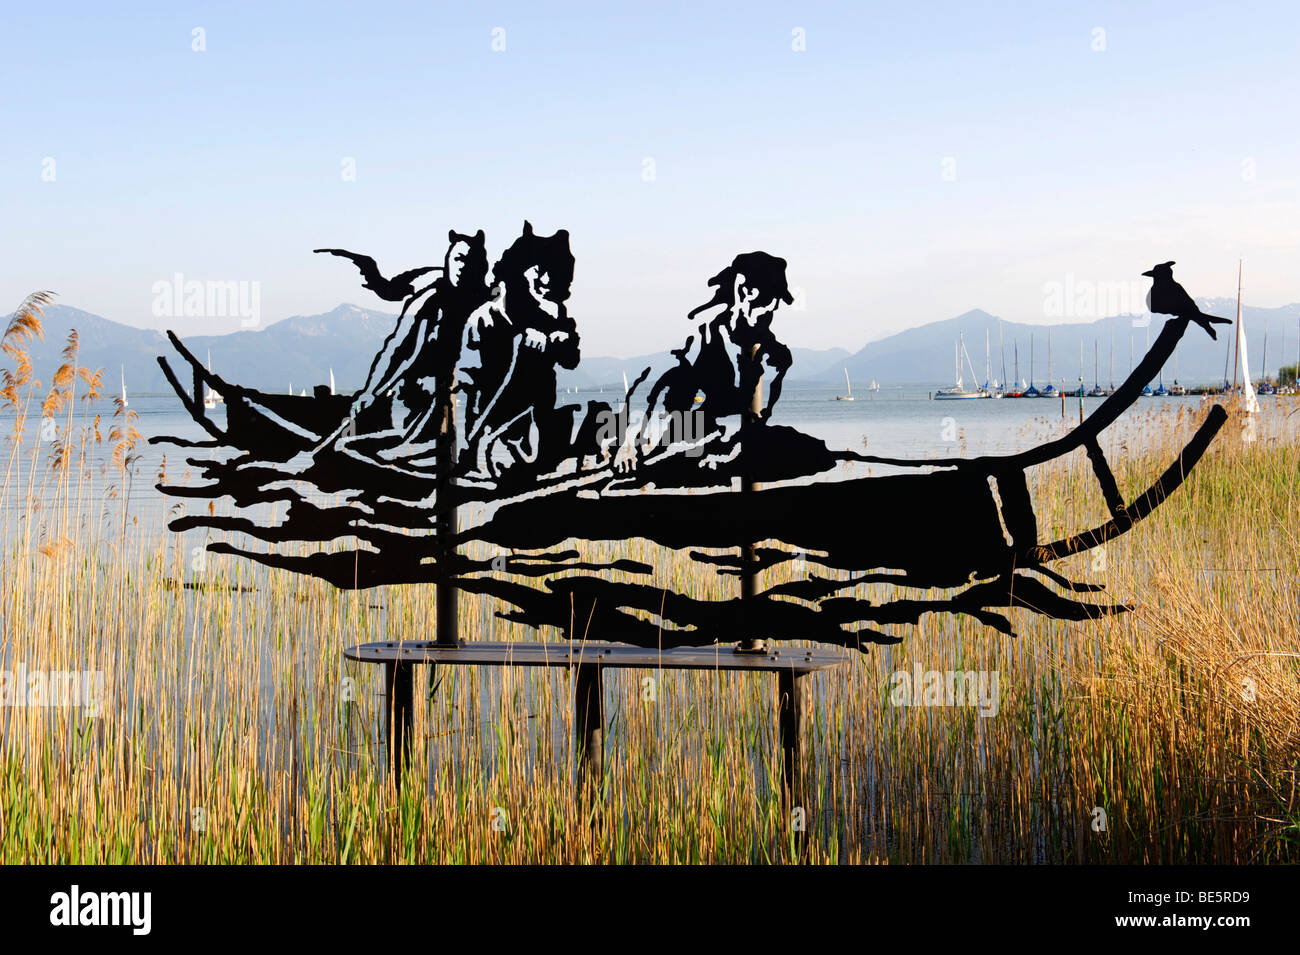 Celtic boat, sculptur by W. A. Angerer, Angerer the Younger, Seebruck on the Chiemsee lake, Upper Bavaria, Germany, - Stock Image